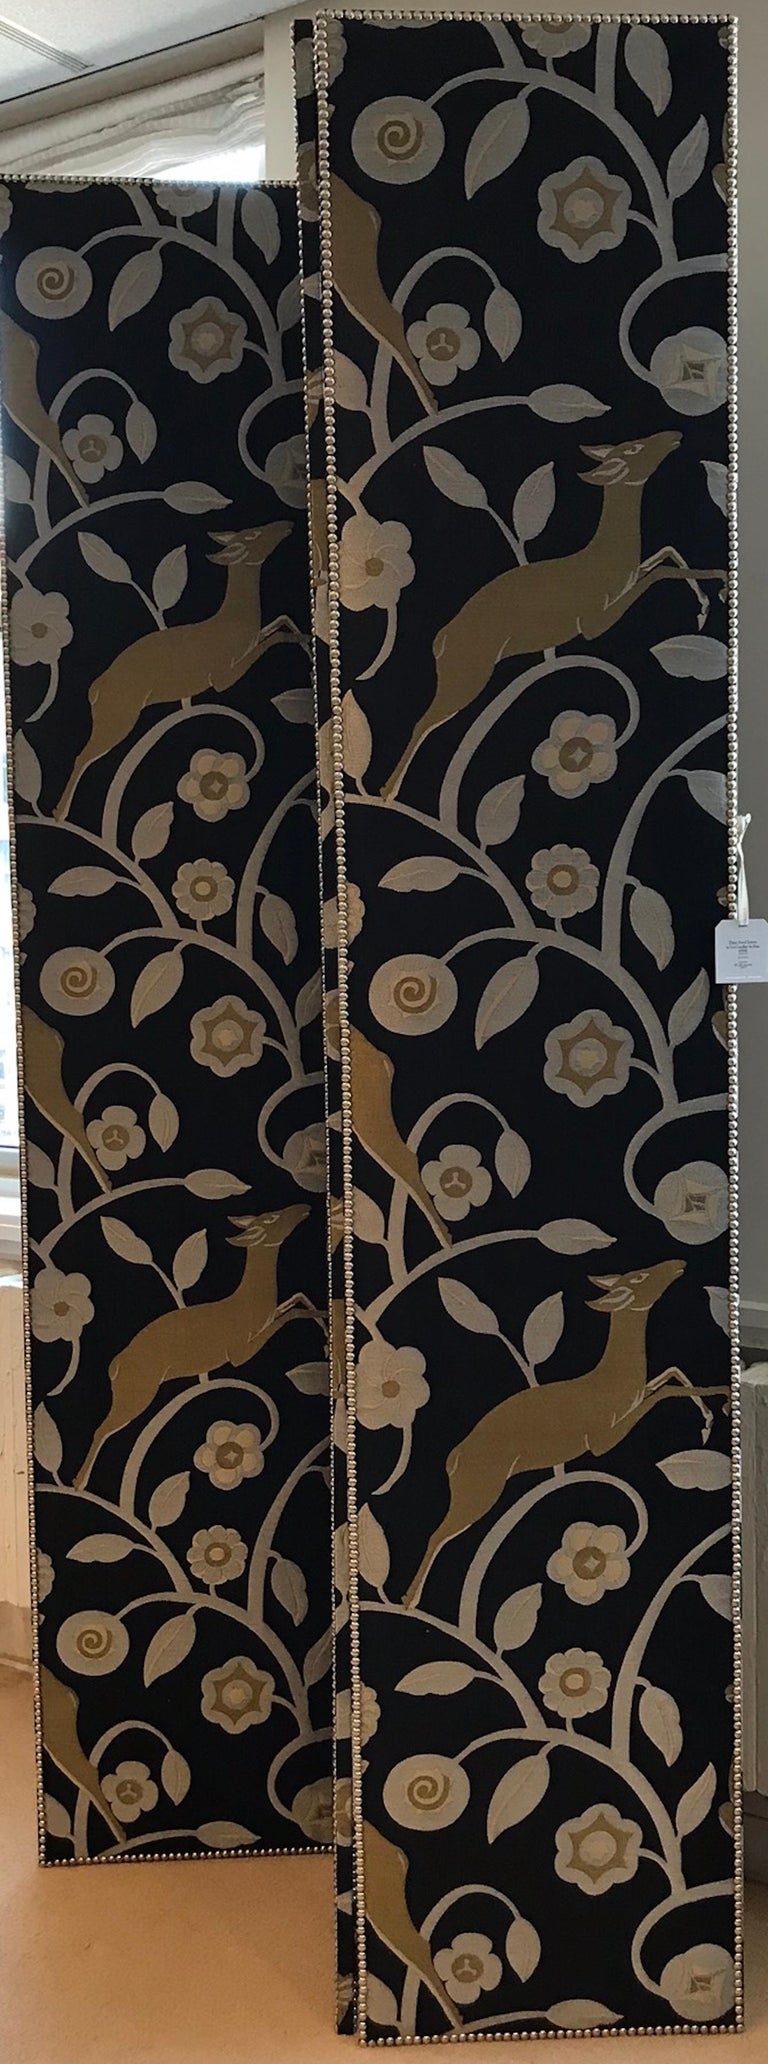 This three panel screen includes a floral and animal design that is colored in gold hues on a black backdrop. The nailhead detailing creates a clean boarder to this elegant accessory and room divider!   Since Schumacher was founded in 1889, our